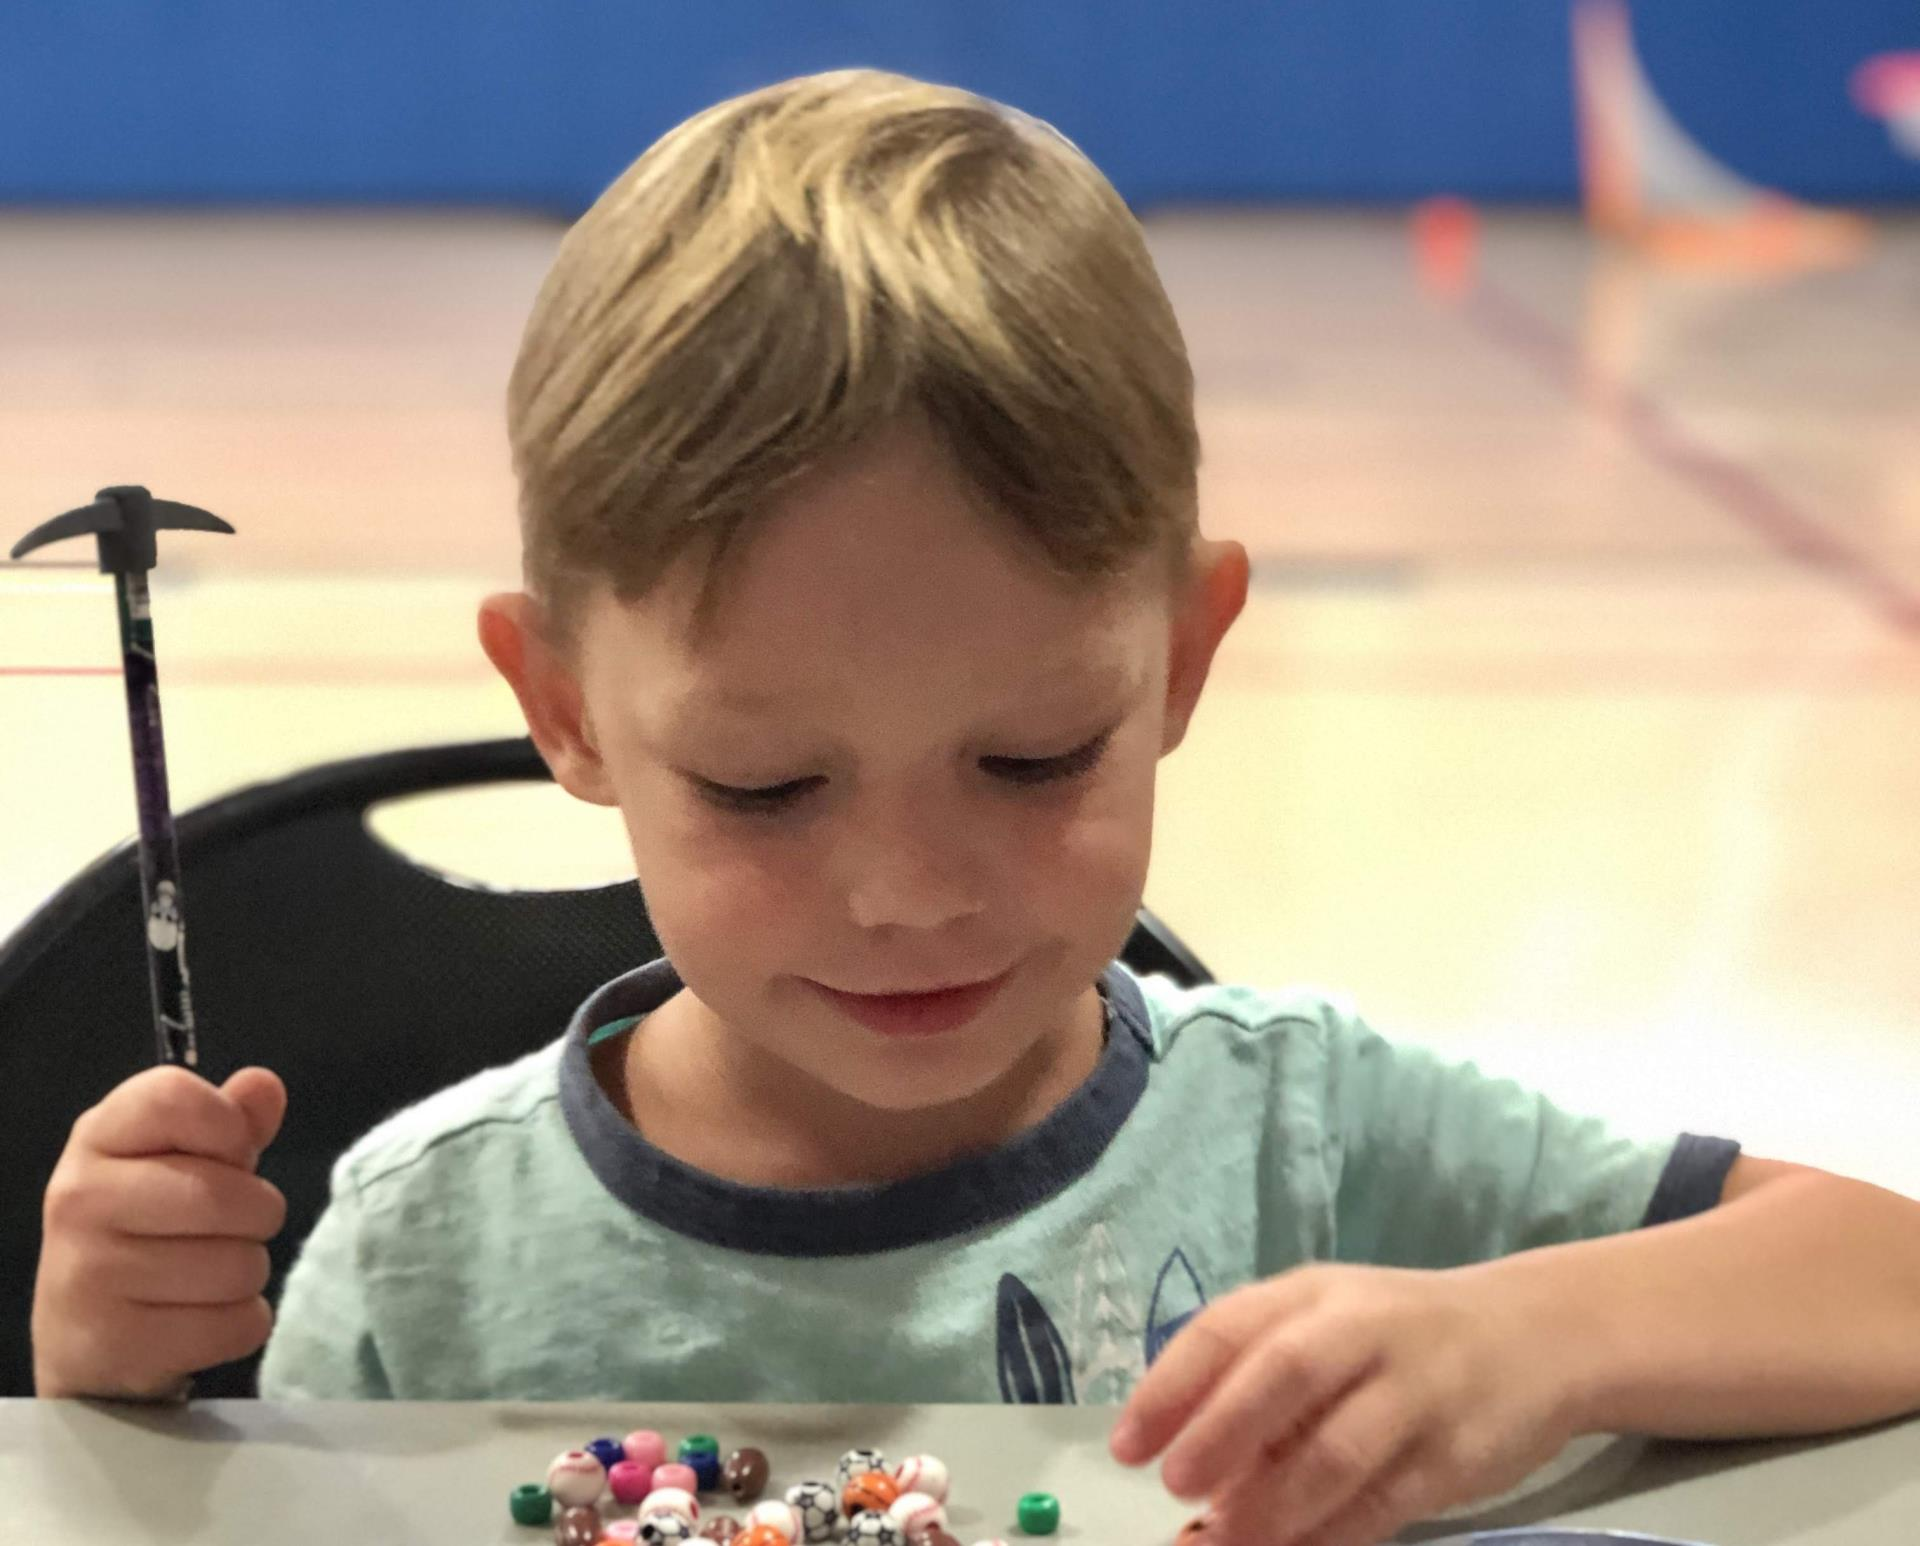 A little boy sits in the gym making beaded bracelets with a smile on his face